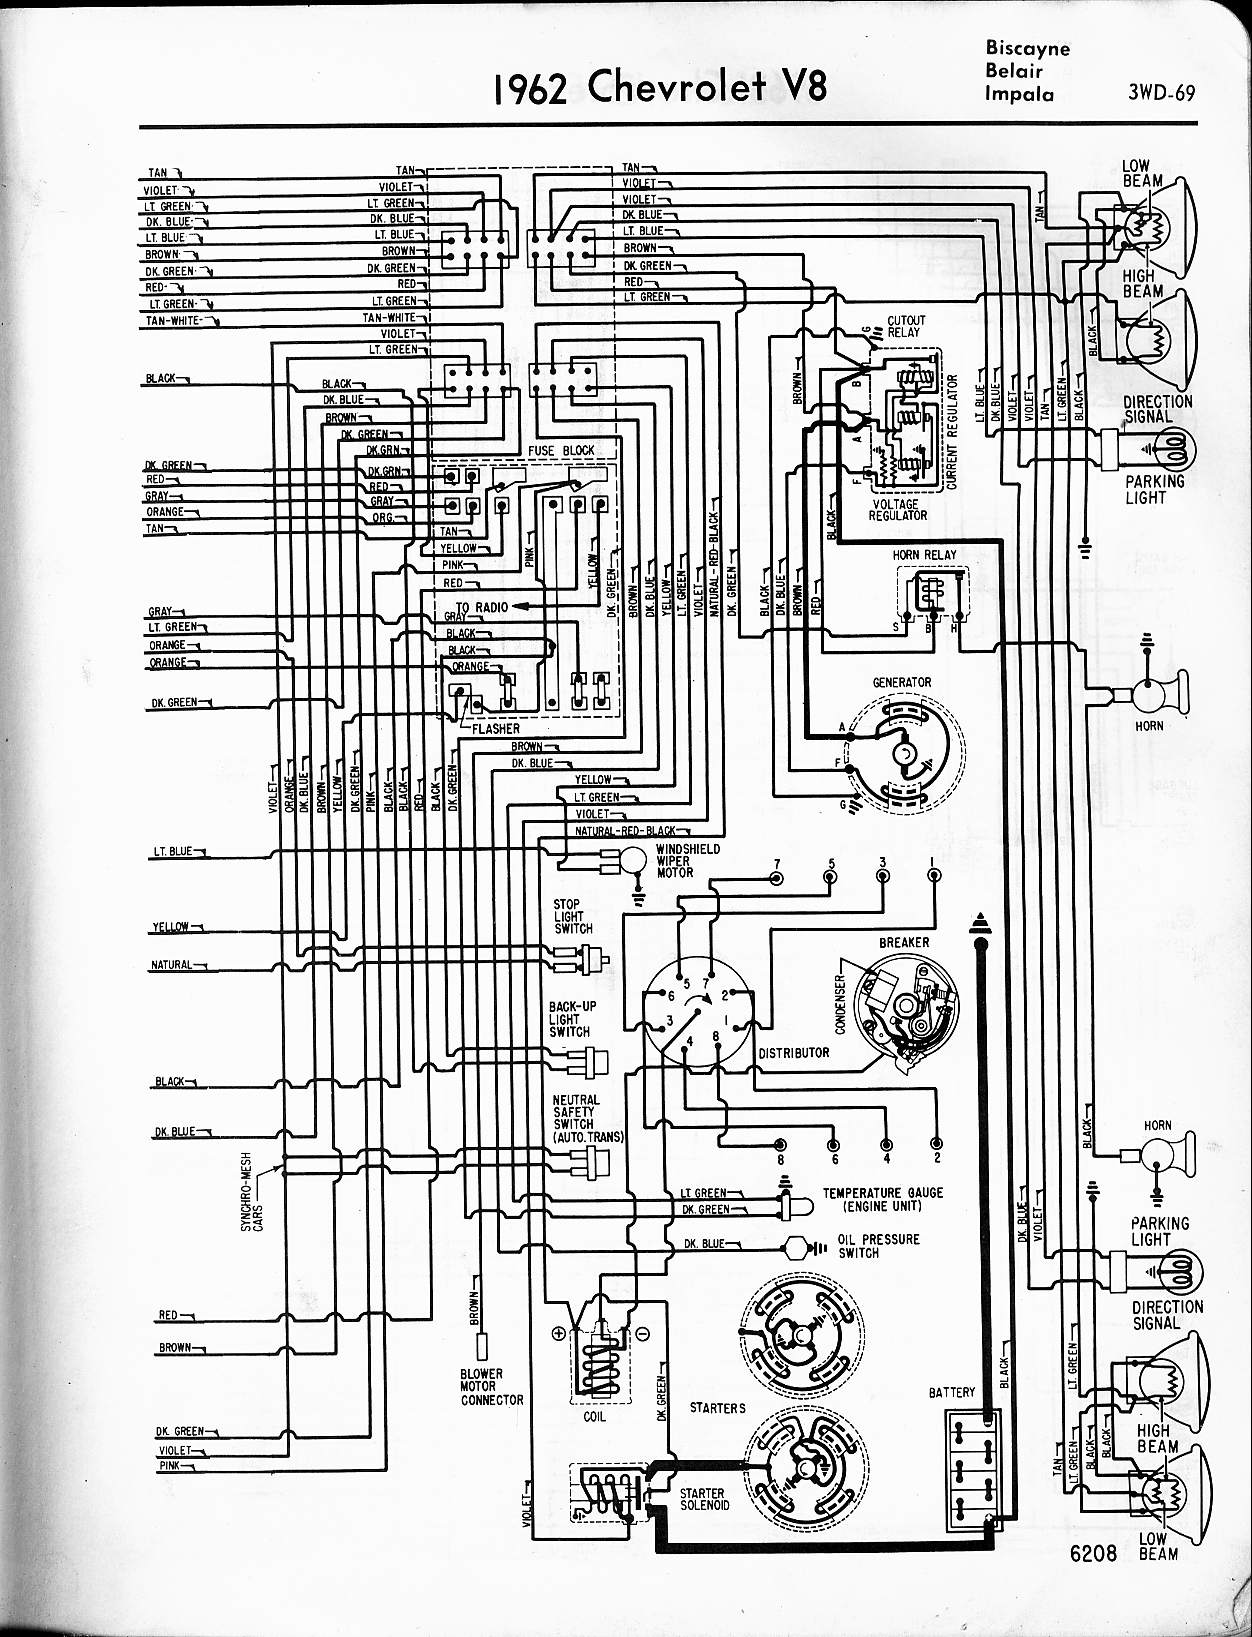 MWireChev62_3WD 069 1962 chevrolet wiring diagram manual chevytalk free 1964 impala wiring diagram at webbmarketing.co